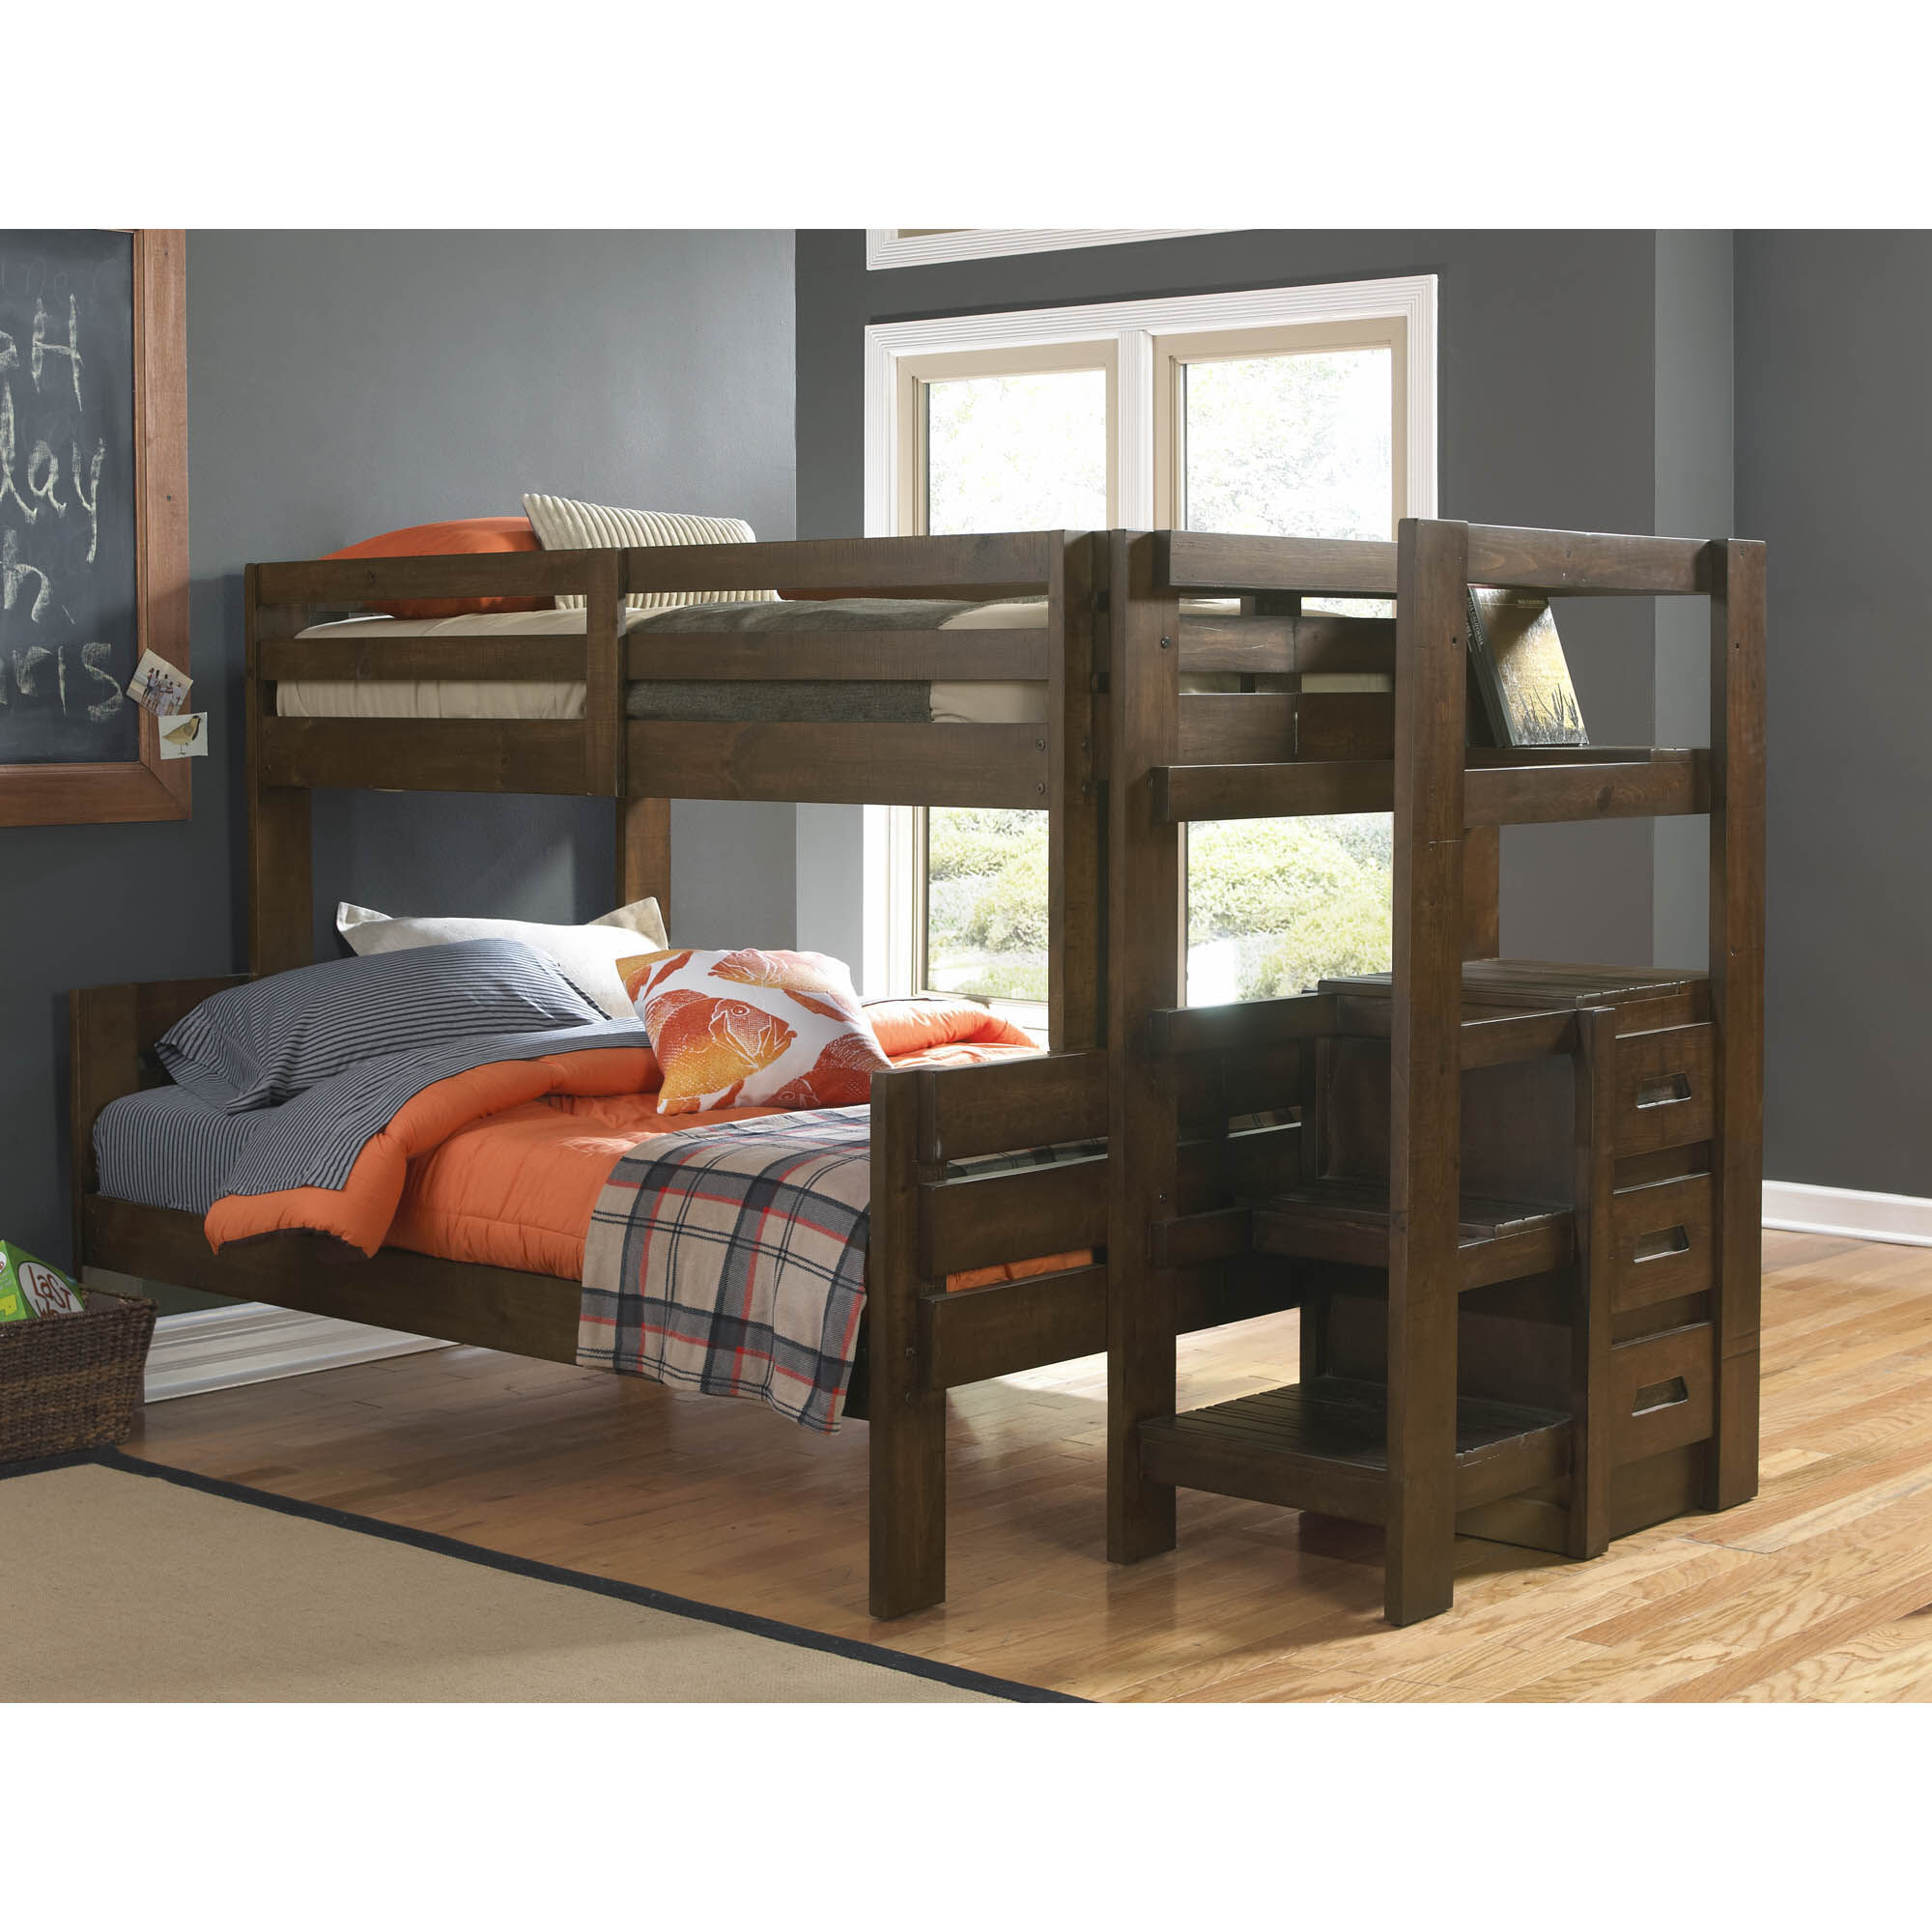 7 Piece Twin + Full Storage Bunk Bed